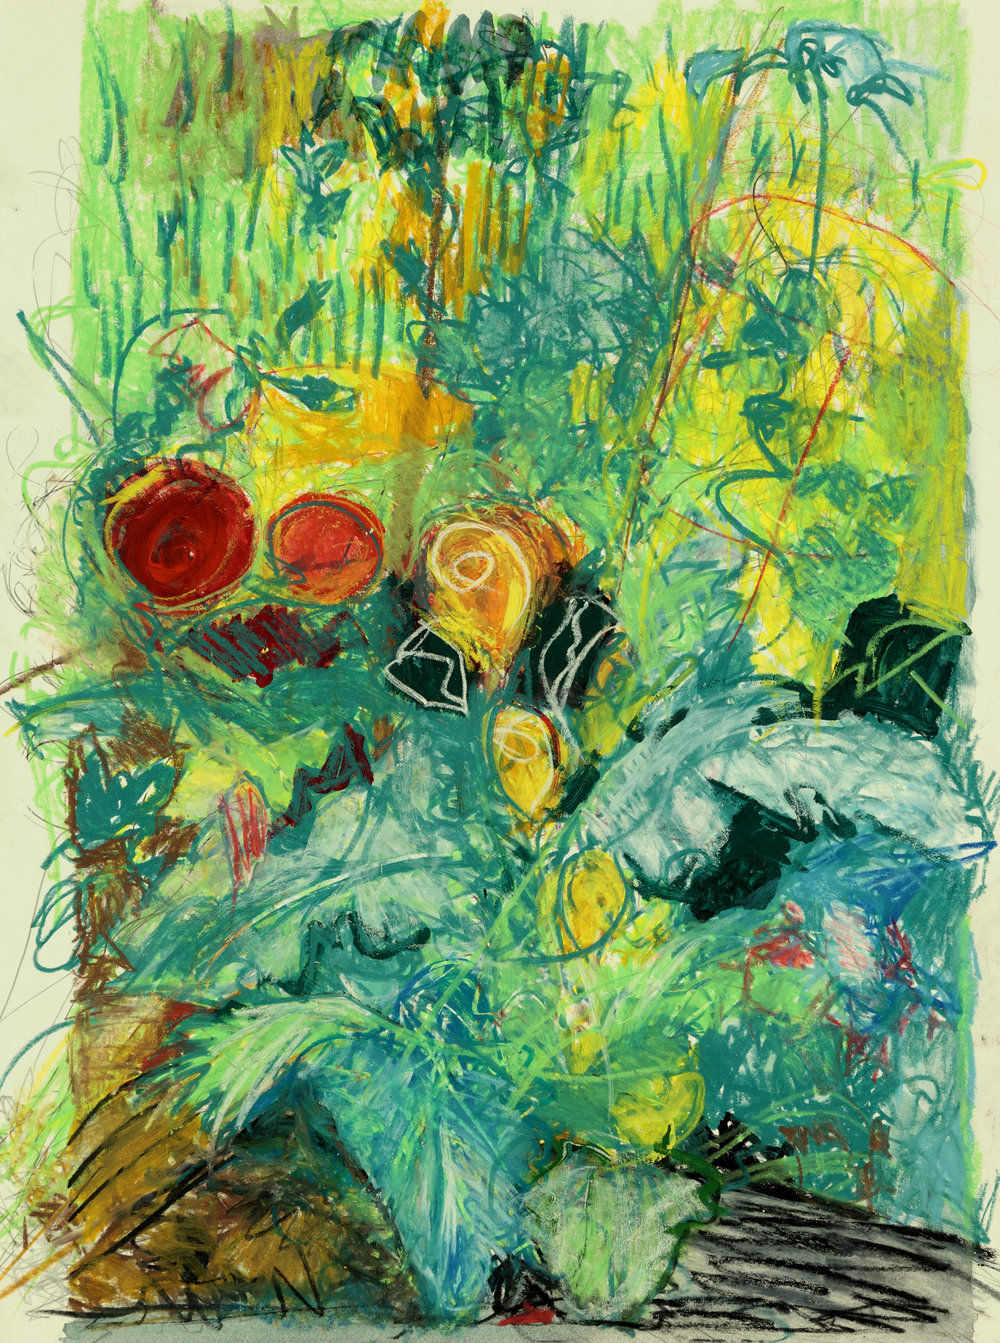 Late Summer Garden, 2015, Wax Pastel on Paper, 24 x 18 inches